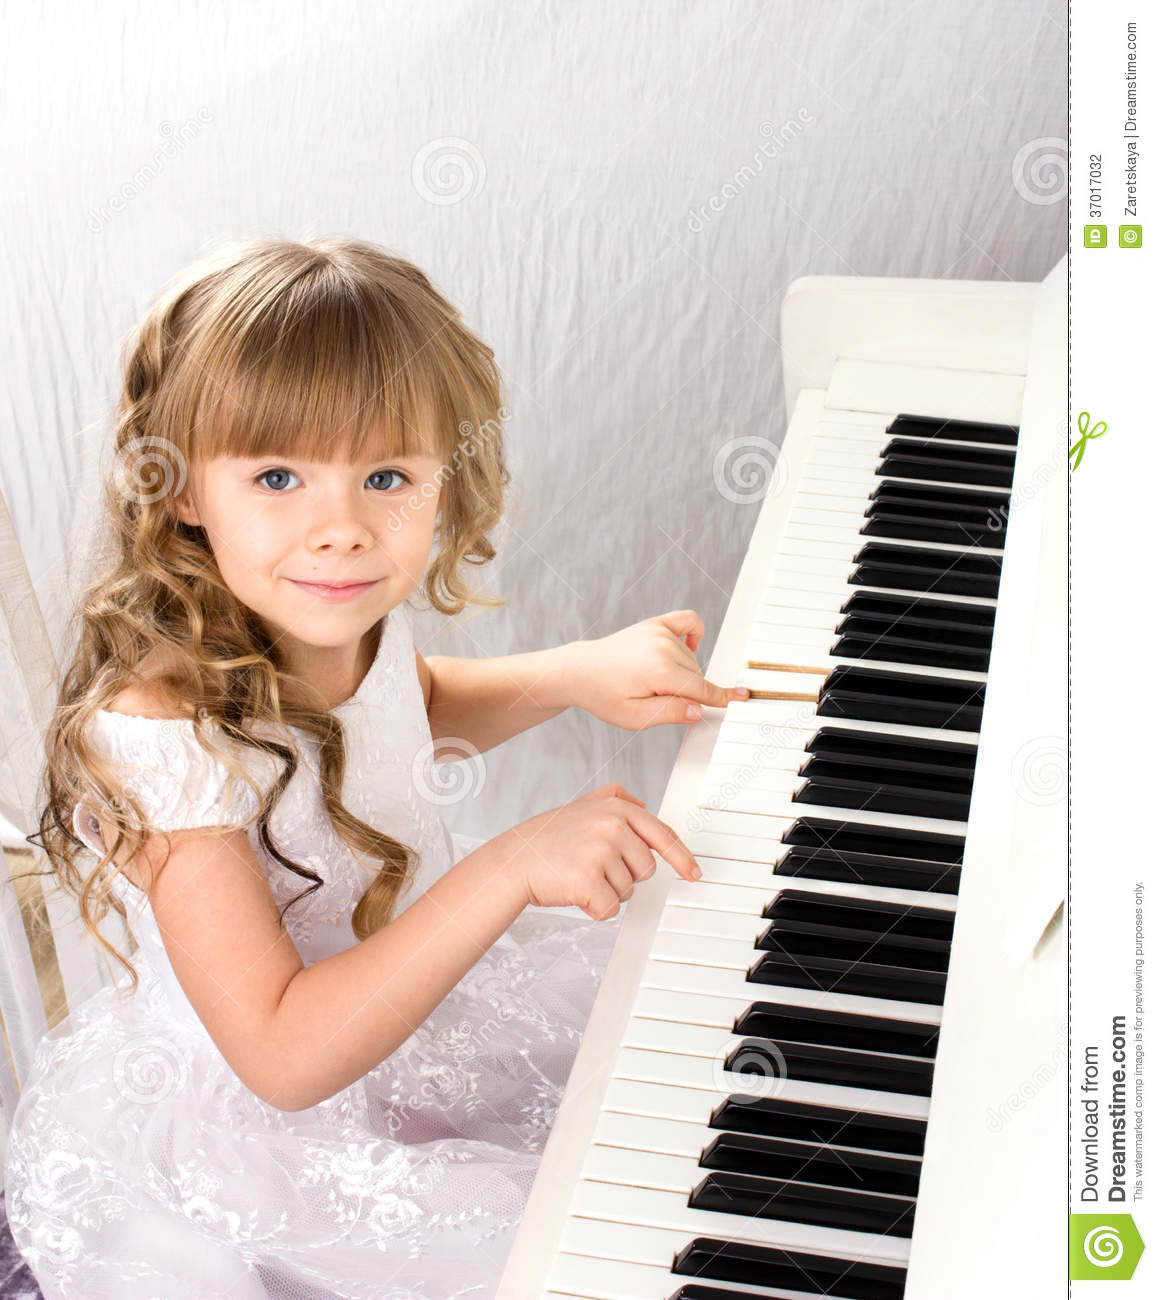 Consider, that little girl nude playing piano opinion you